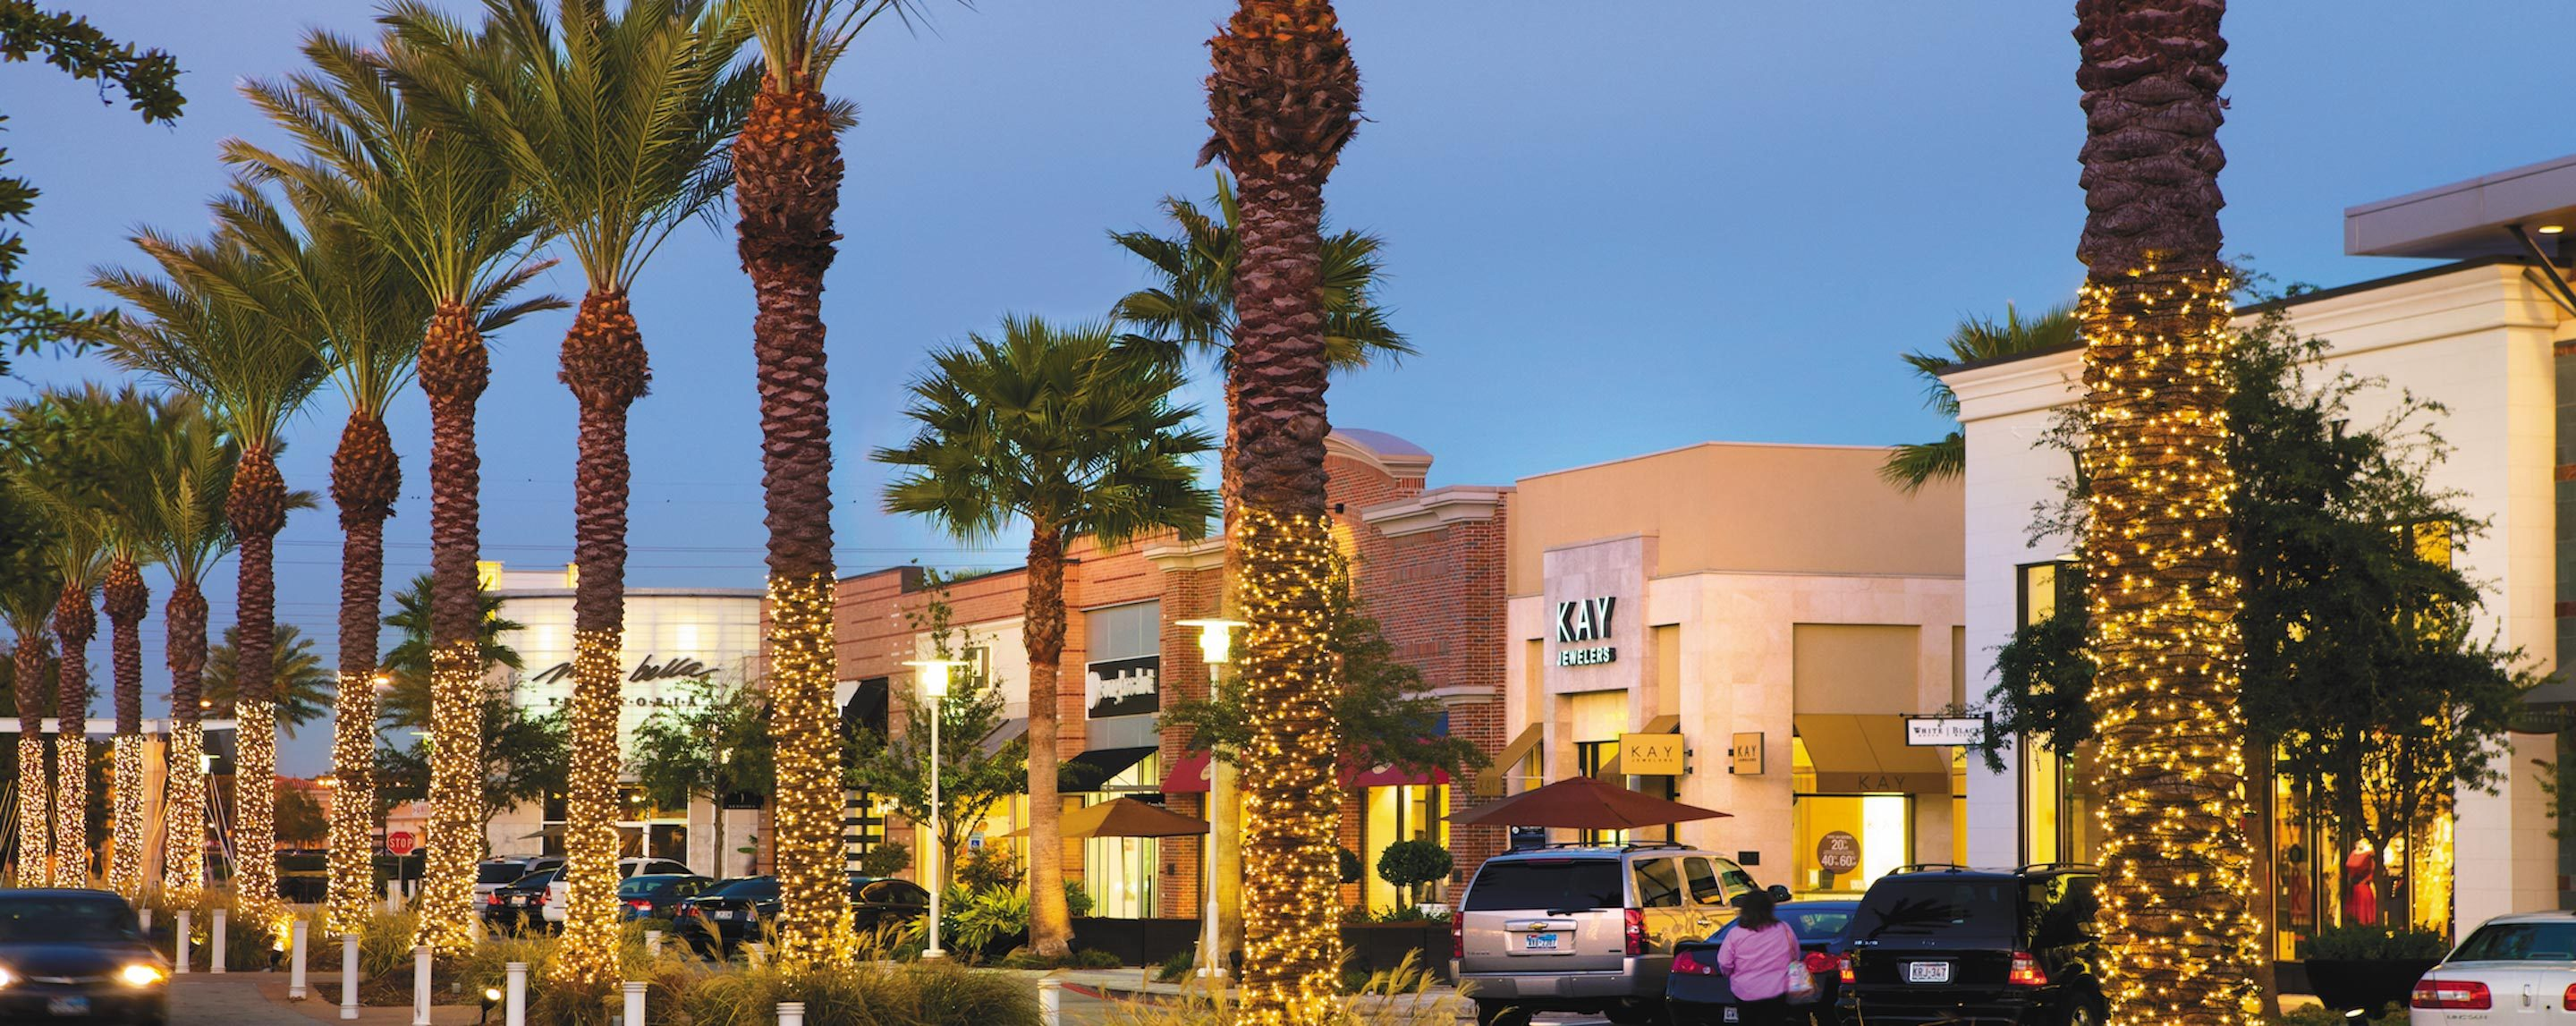 A line of palm trees with Christmas lights stands in front of the exterior of a large mall.